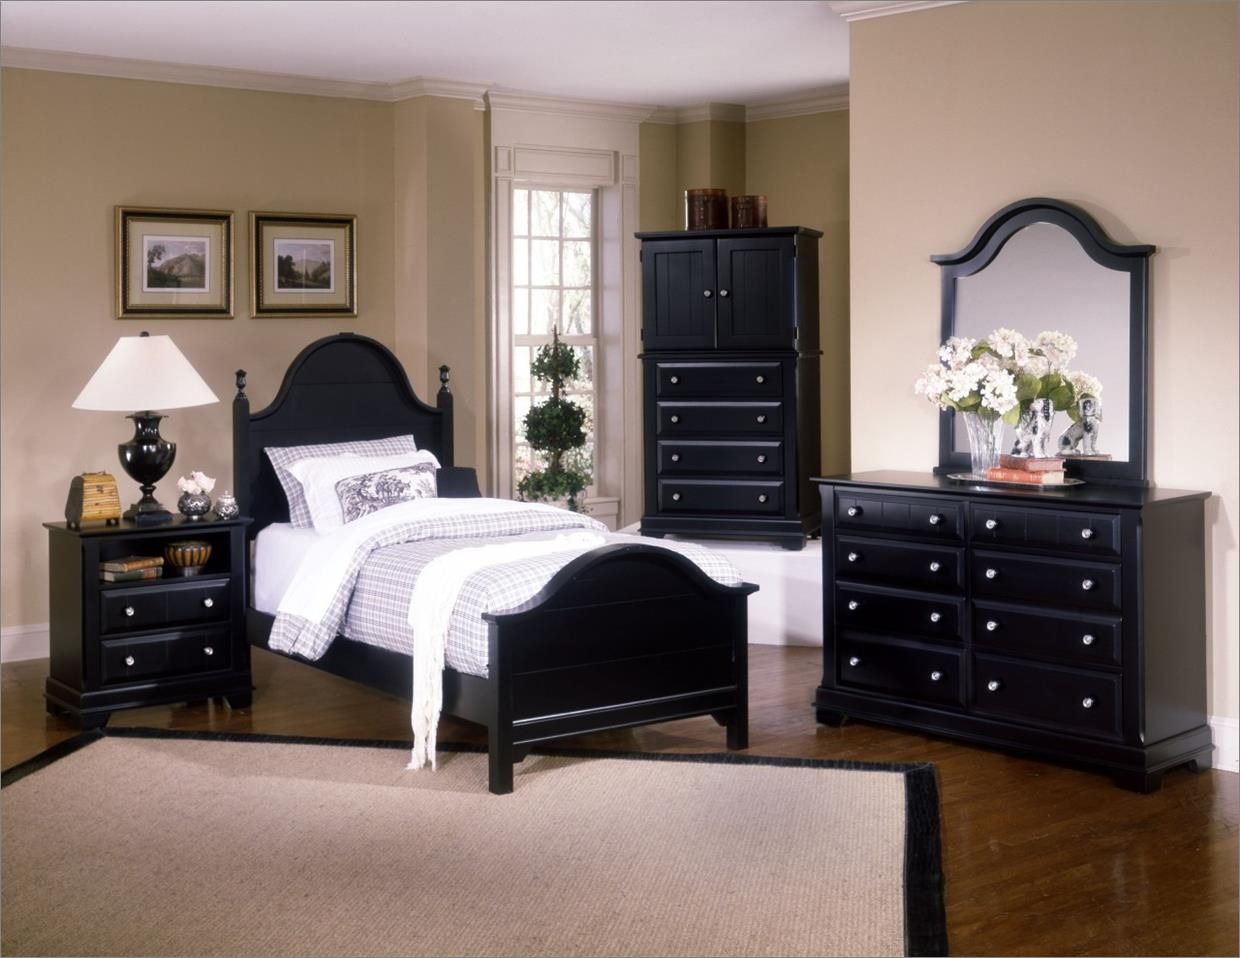 Awesome Luxury Twin Bed Sets 81 About Remodel Home Decoration Captivating Twin Bedroom Sets Inspiration